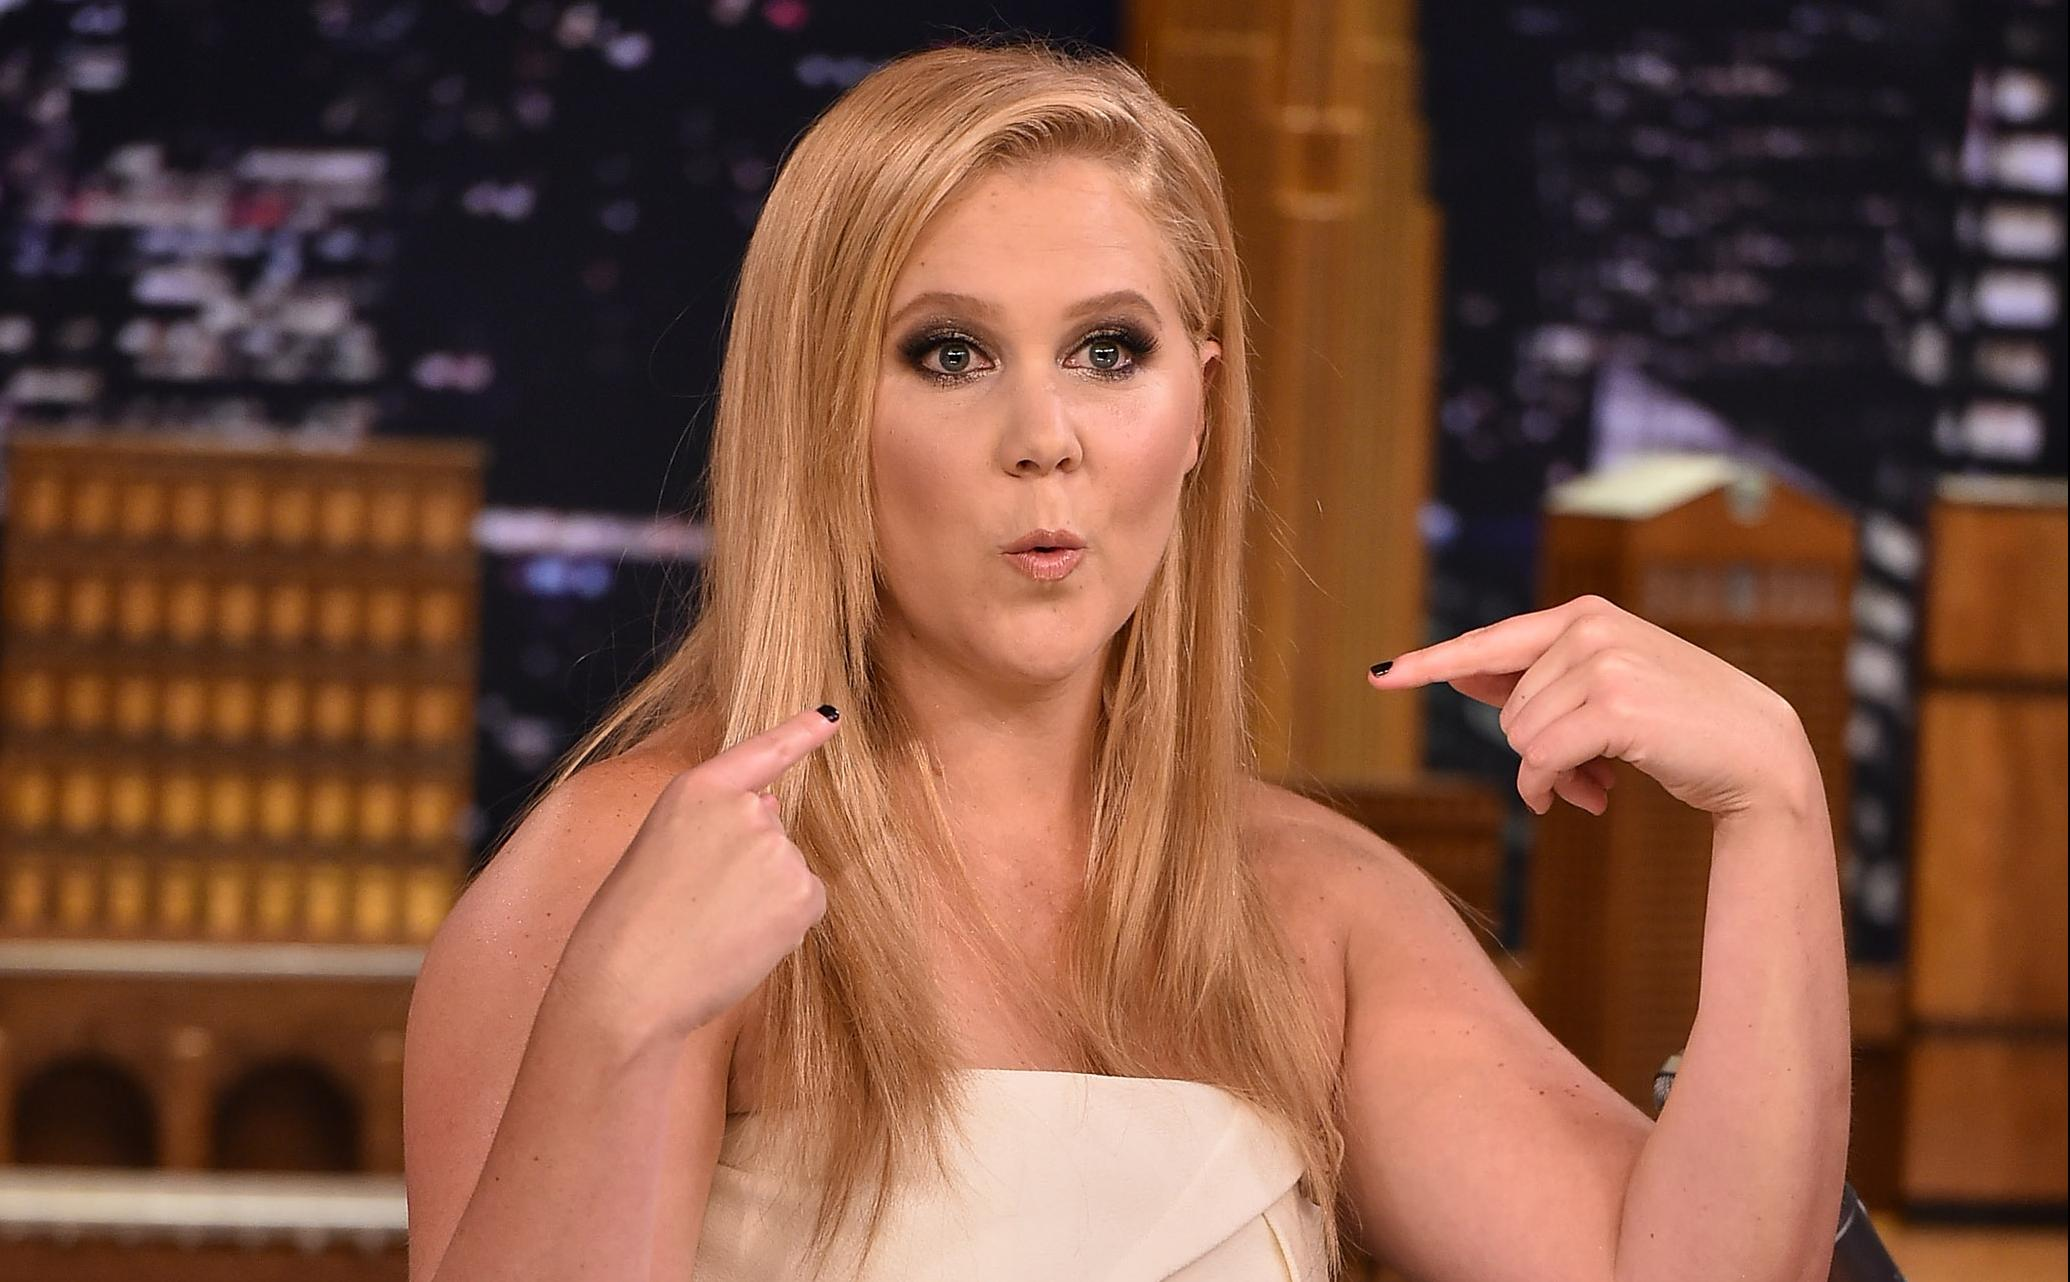 Amy Schumer Nude Scene it sure looks like amy schumer's stomach has been retouched